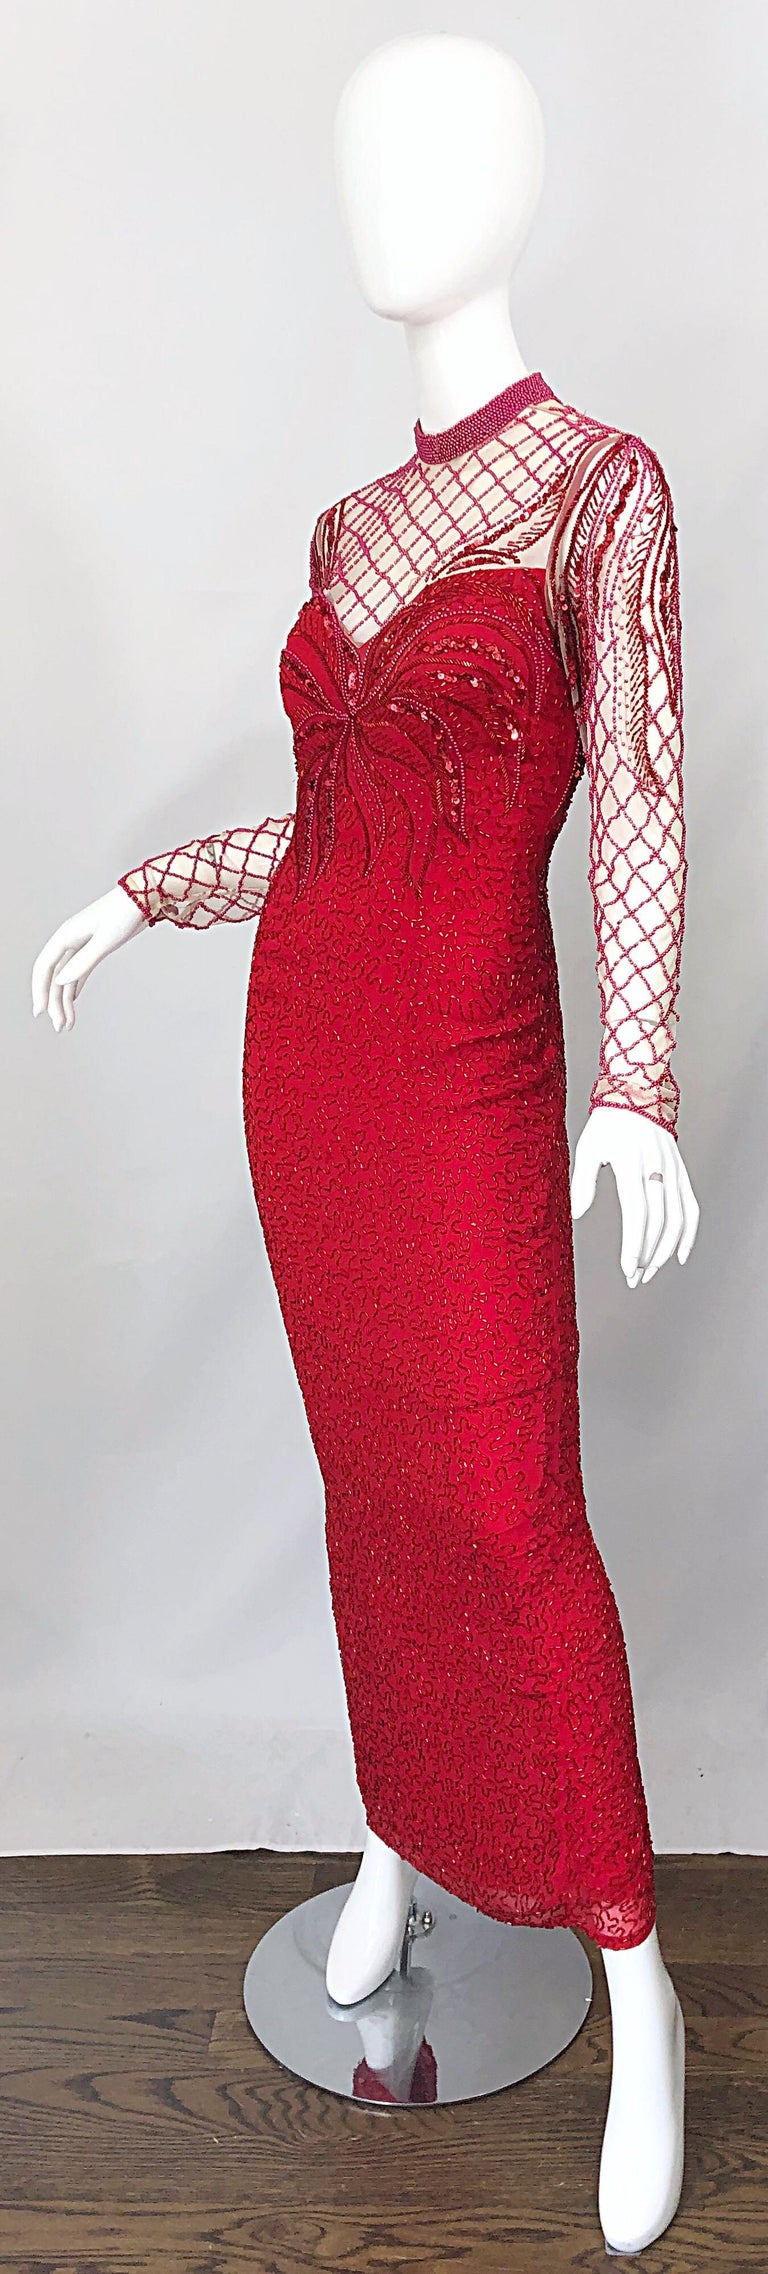 Vintage Oleg Cassini 1990s Lipstick Red Beaded Silk Chiffon 90s Evening Gown For Sale 1